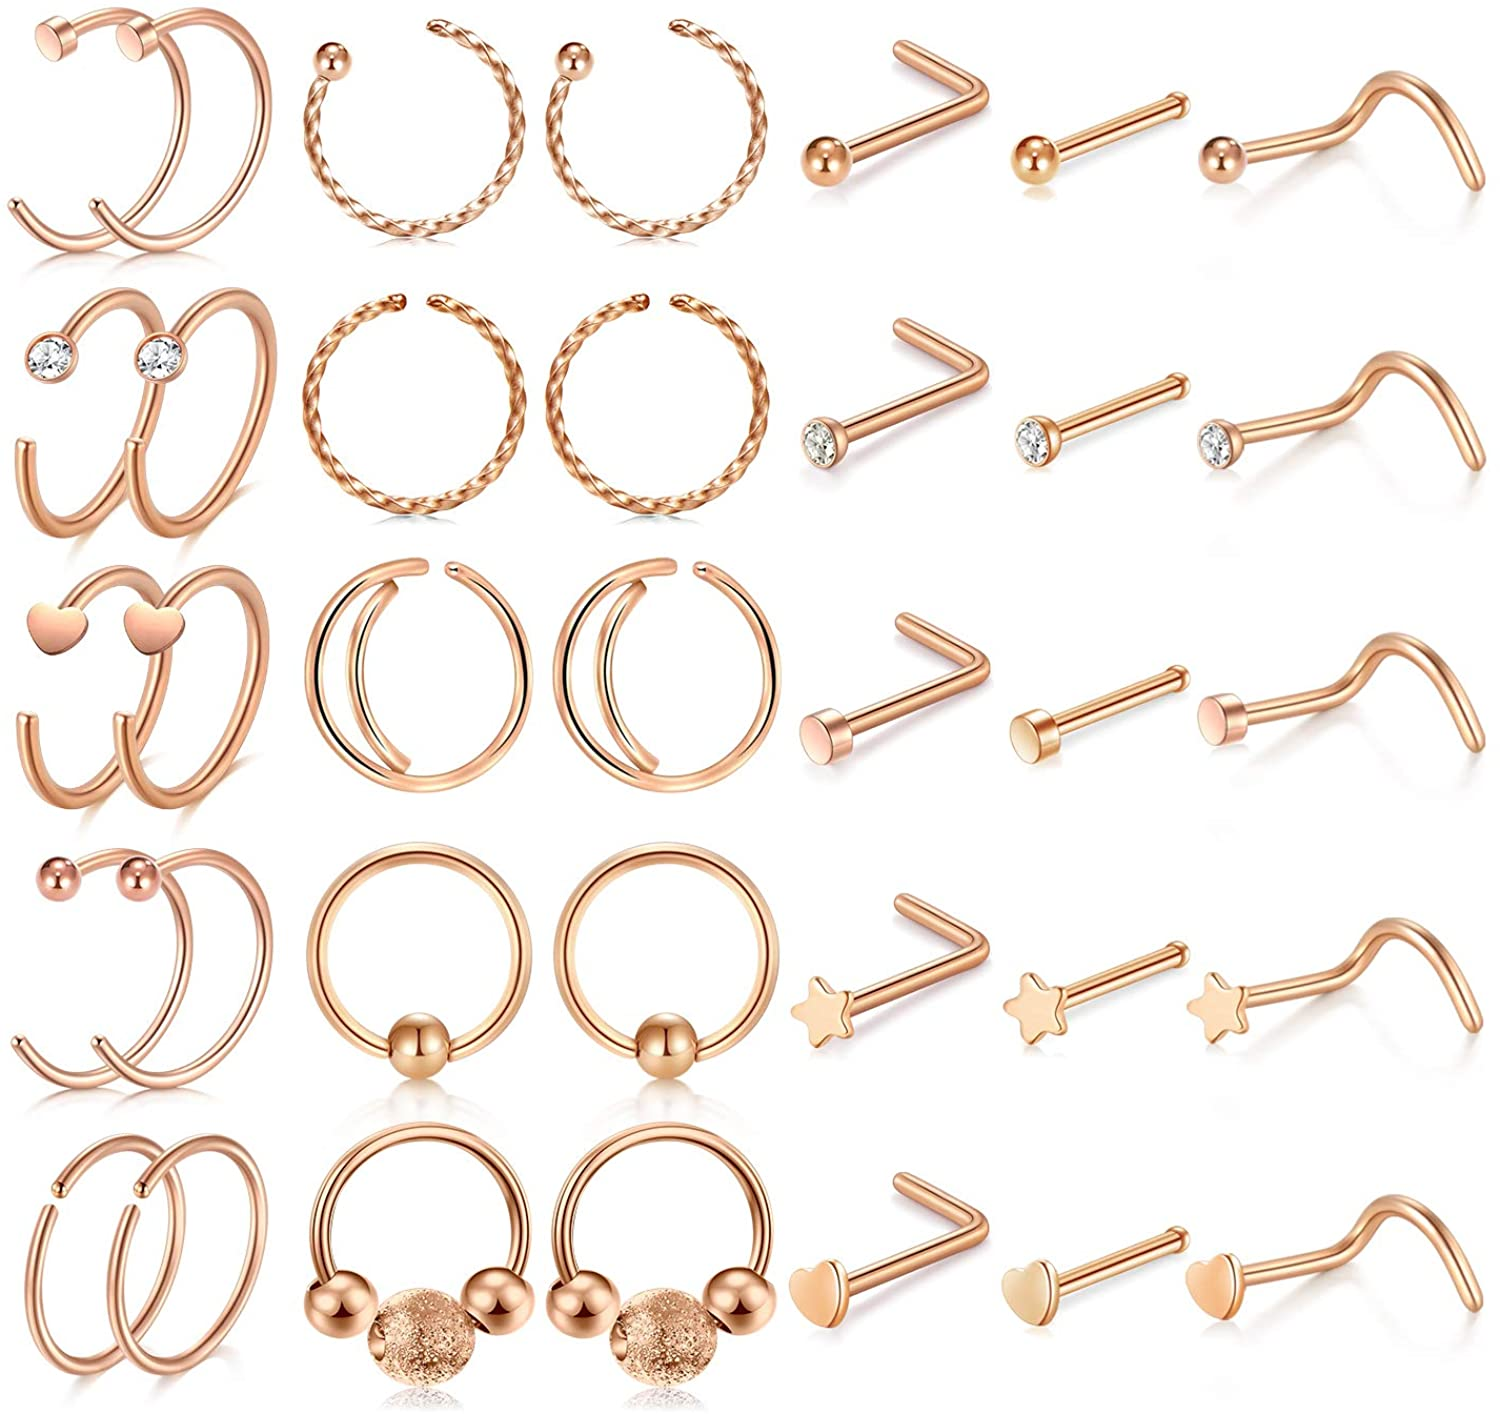 MODRSA Nose Rings Hoop 20g Nose Studs l Shaped Surgical Stainless Steel Nose Screw 20gauge Star Heart Opal Diamond Nostril Nose Piercing Jewelry Set for Women Men